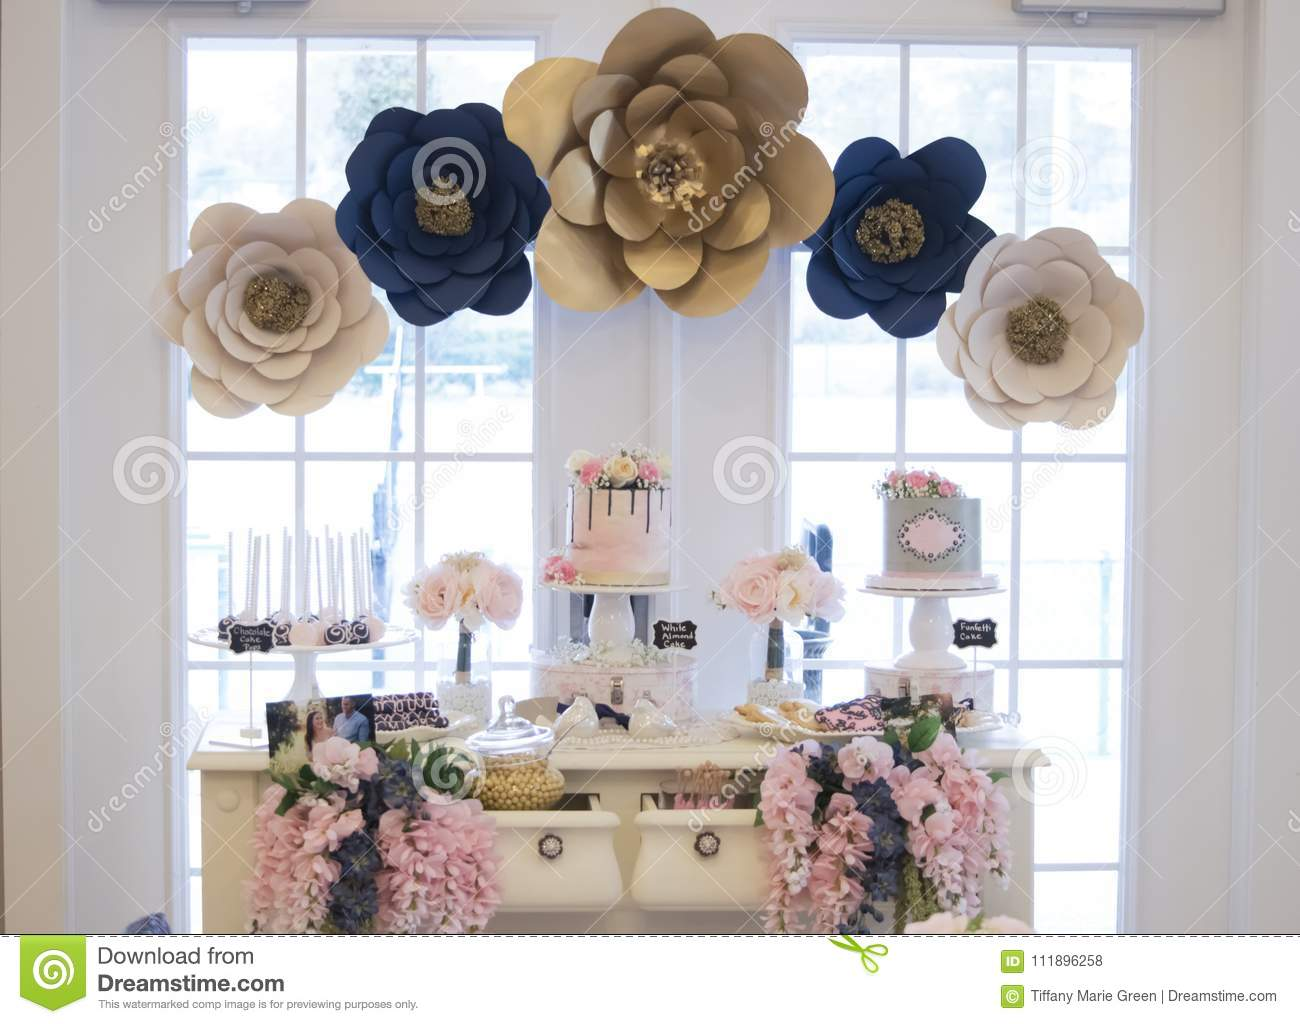 The Dessert Table At A Bridal Shower Stock Photo Image